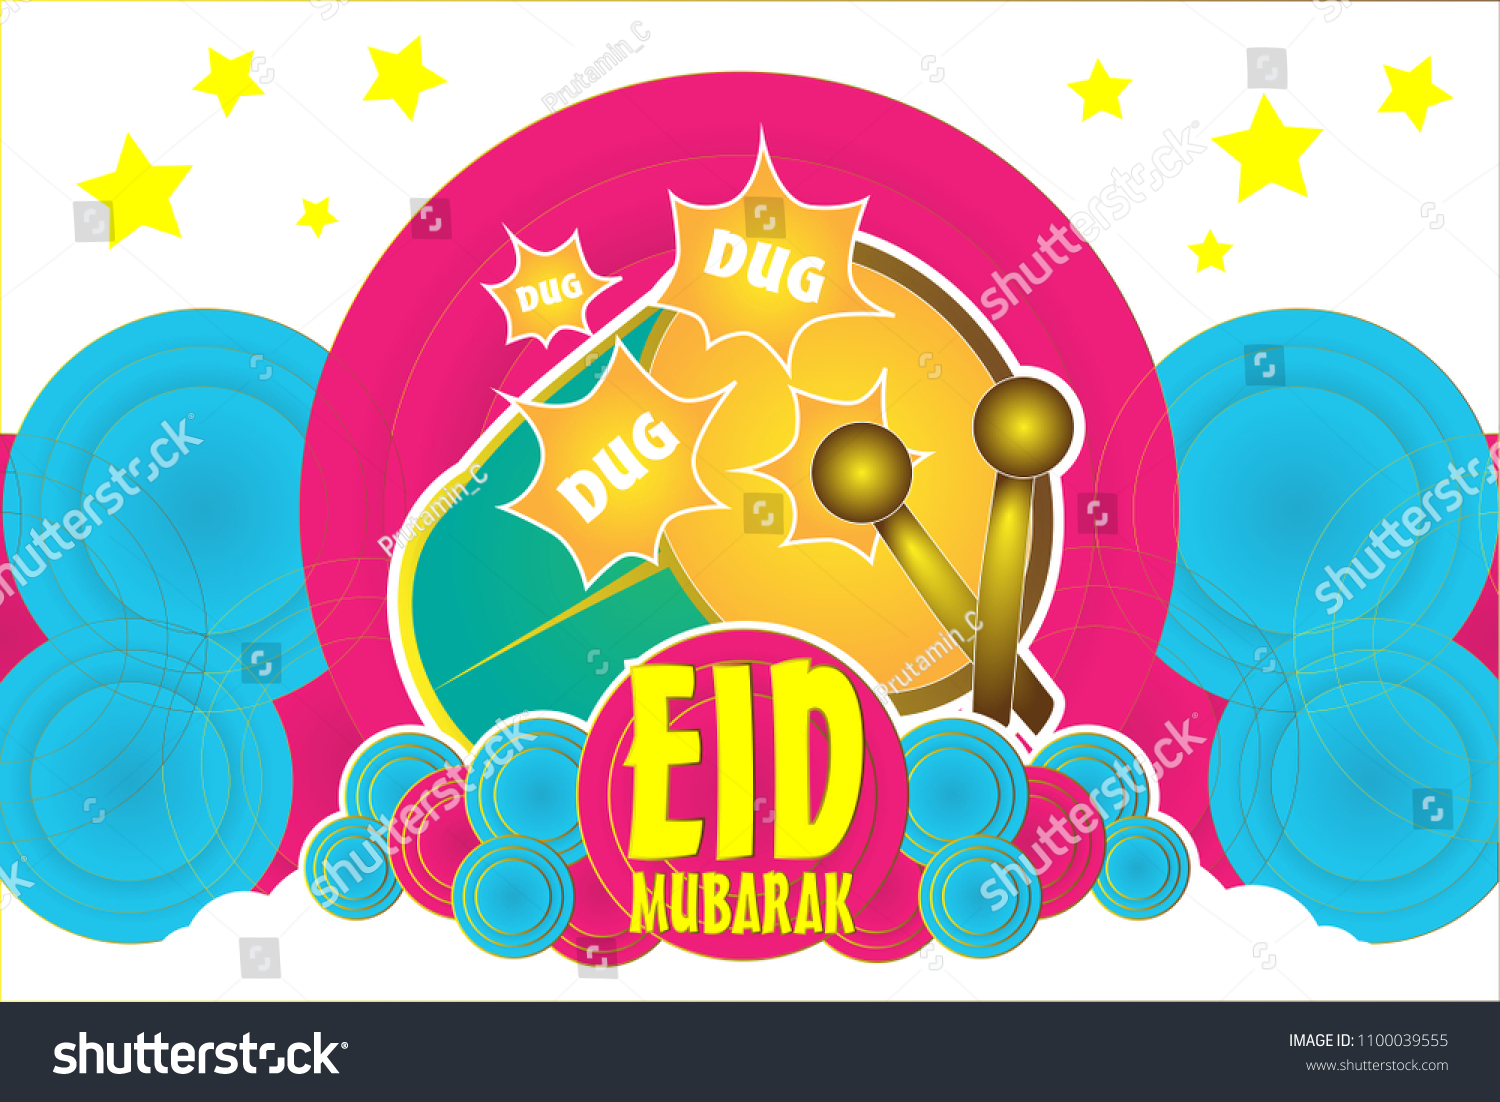 Eid mubarak has mean musim event stock vector 1100039555 shutterstock eid mubarak has mean musim event or holiday with the beduk or traditional music instrument background m4hsunfo